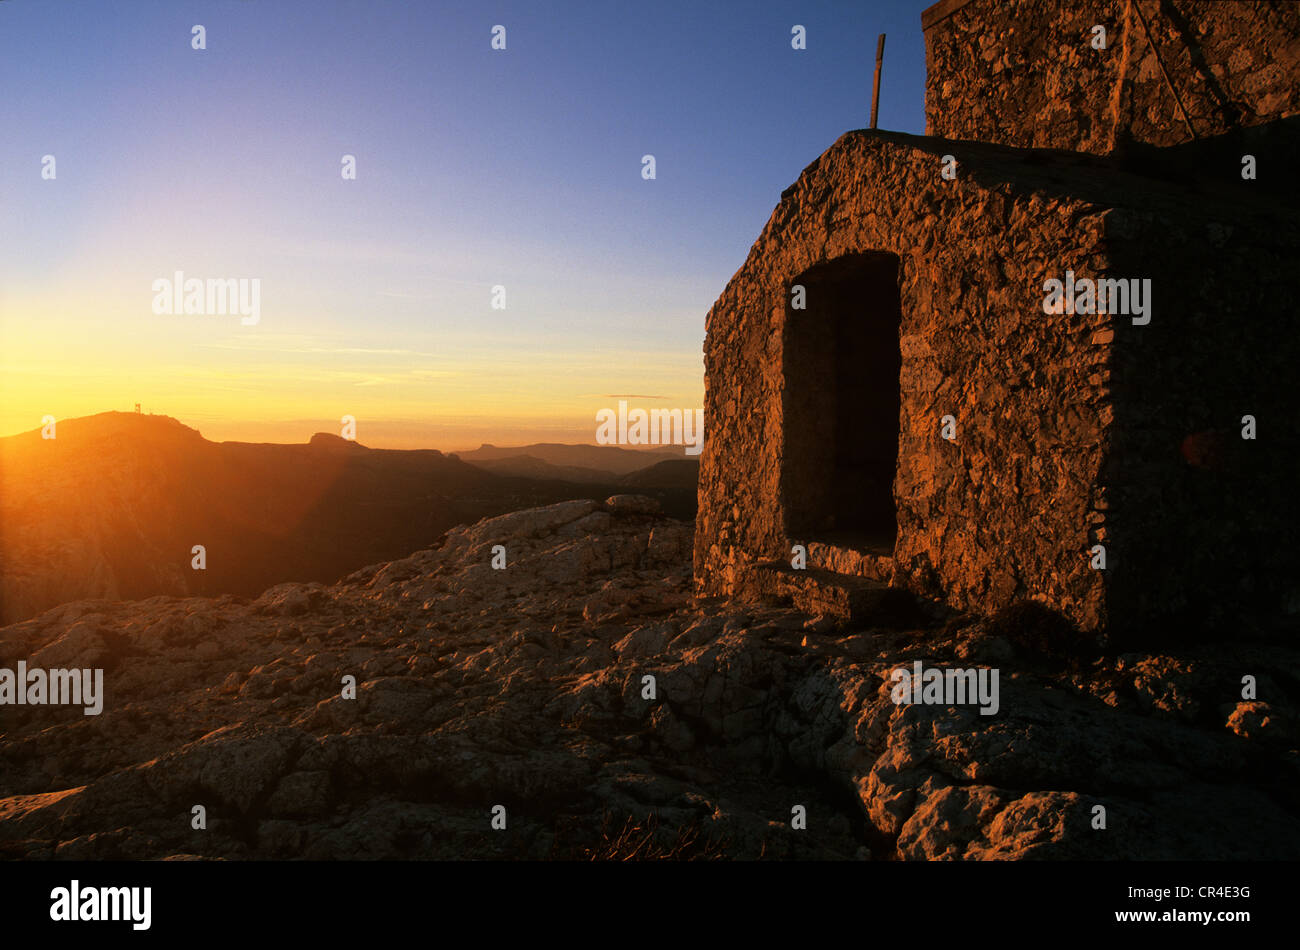 France, Var, the Sainte Baume, St Pilon chapel - Stock Image